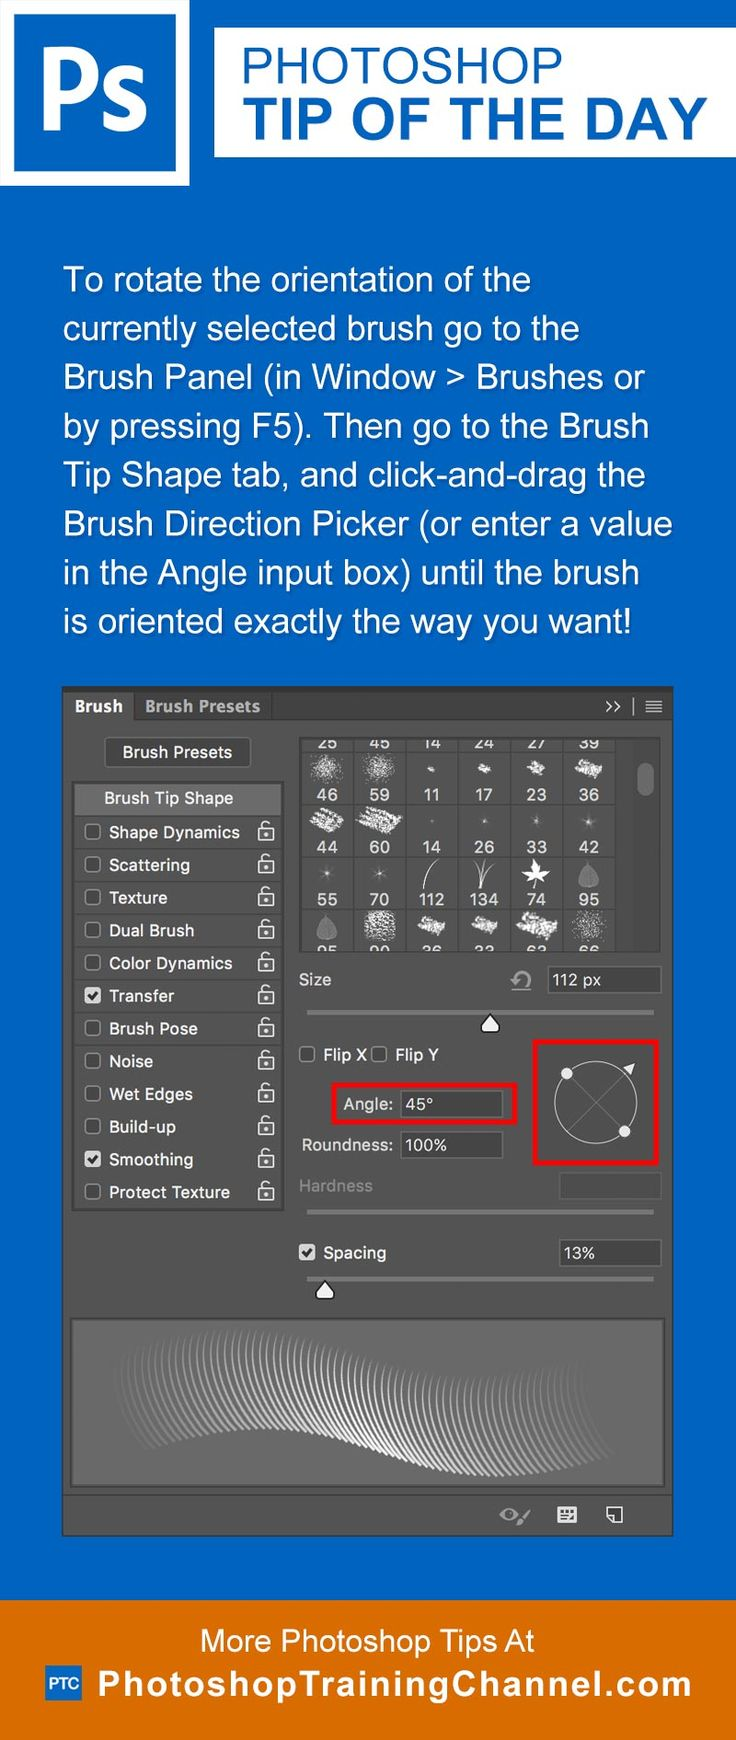 To rotate the orientation of the currently selected brush go to the Brush Panel (in Window > Brushes or by pressing F5). Then go to the Brush Tip Shape tab, and click-and-drag the Brush Direction Picker (or enter a value in the Angle input box) until the brush is oriented exactly the way you want!